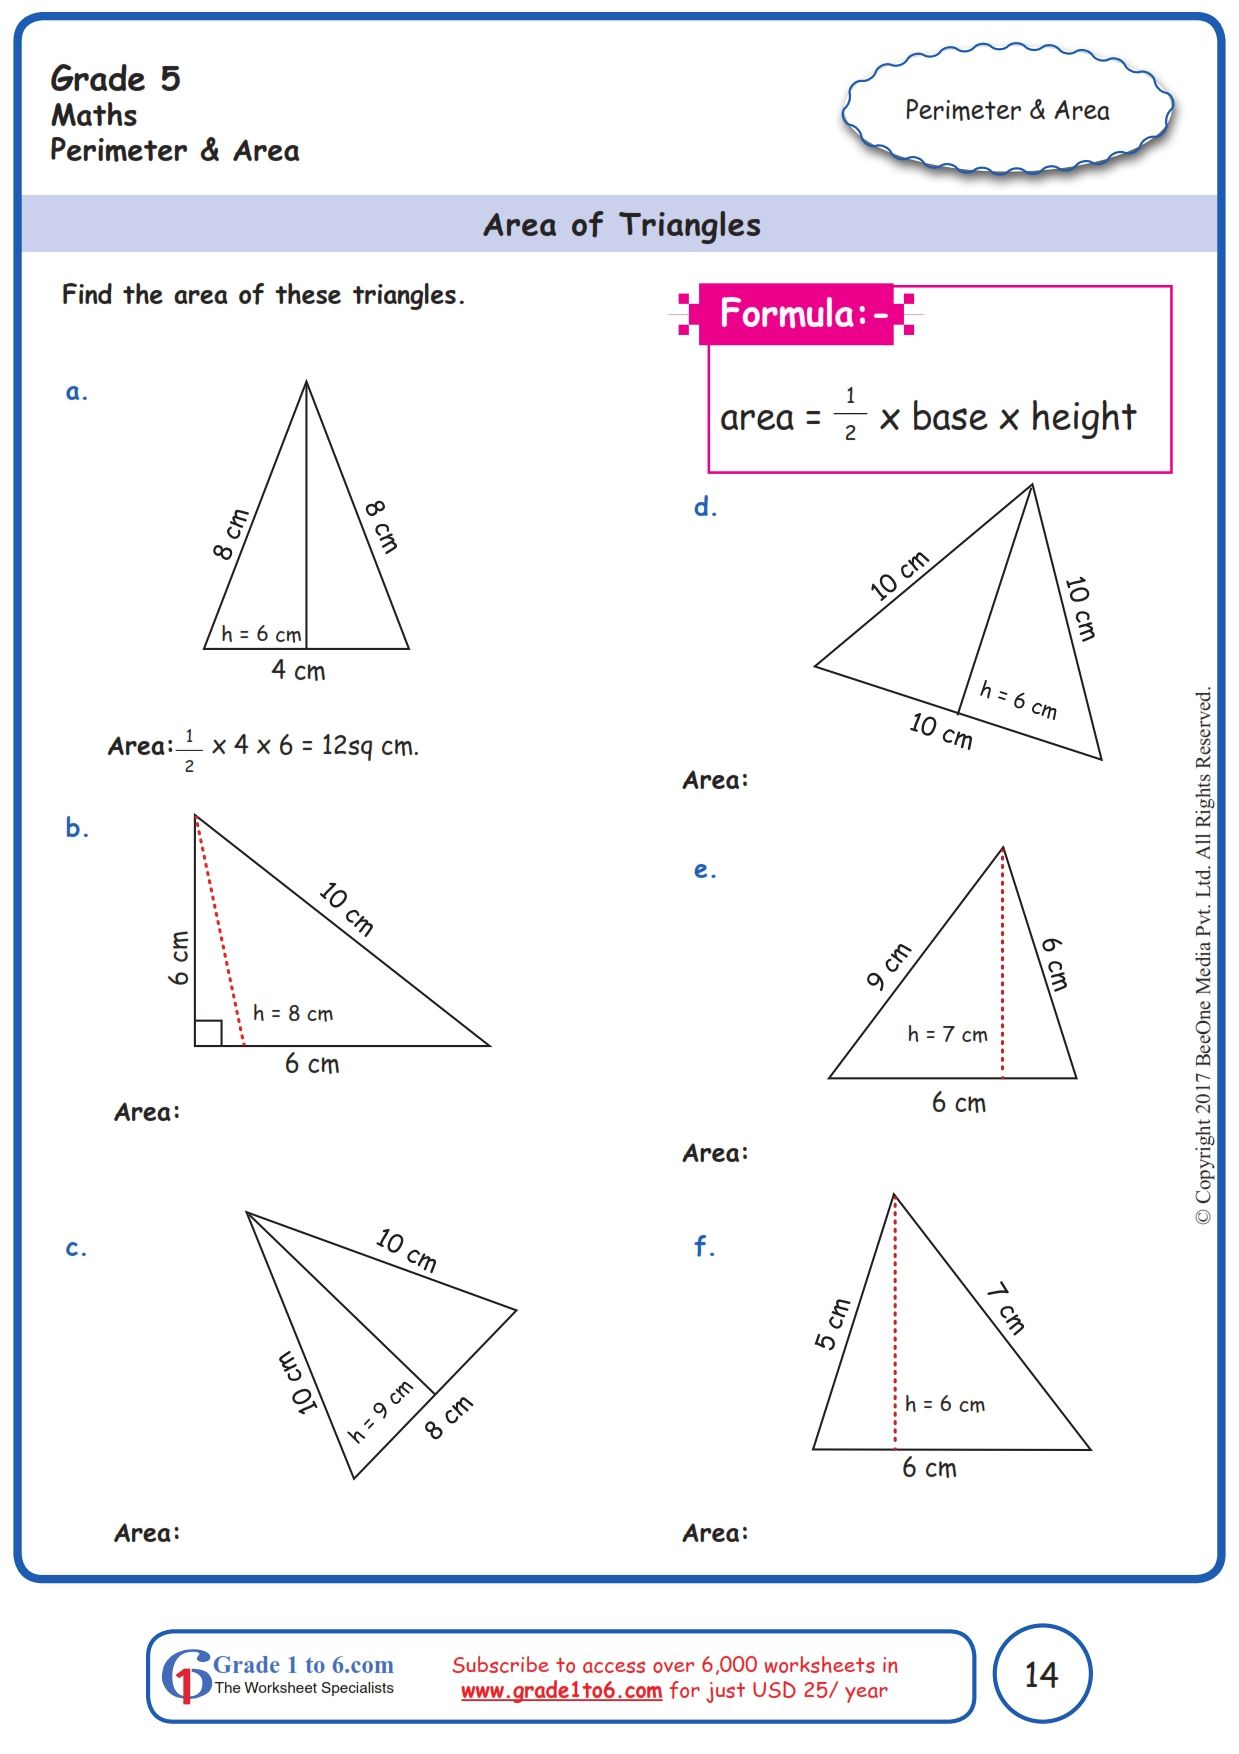 medium resolution of 6th Grade Math Area Of Triangle Worksheets   Printable Worksheets and  Activities for Teachers